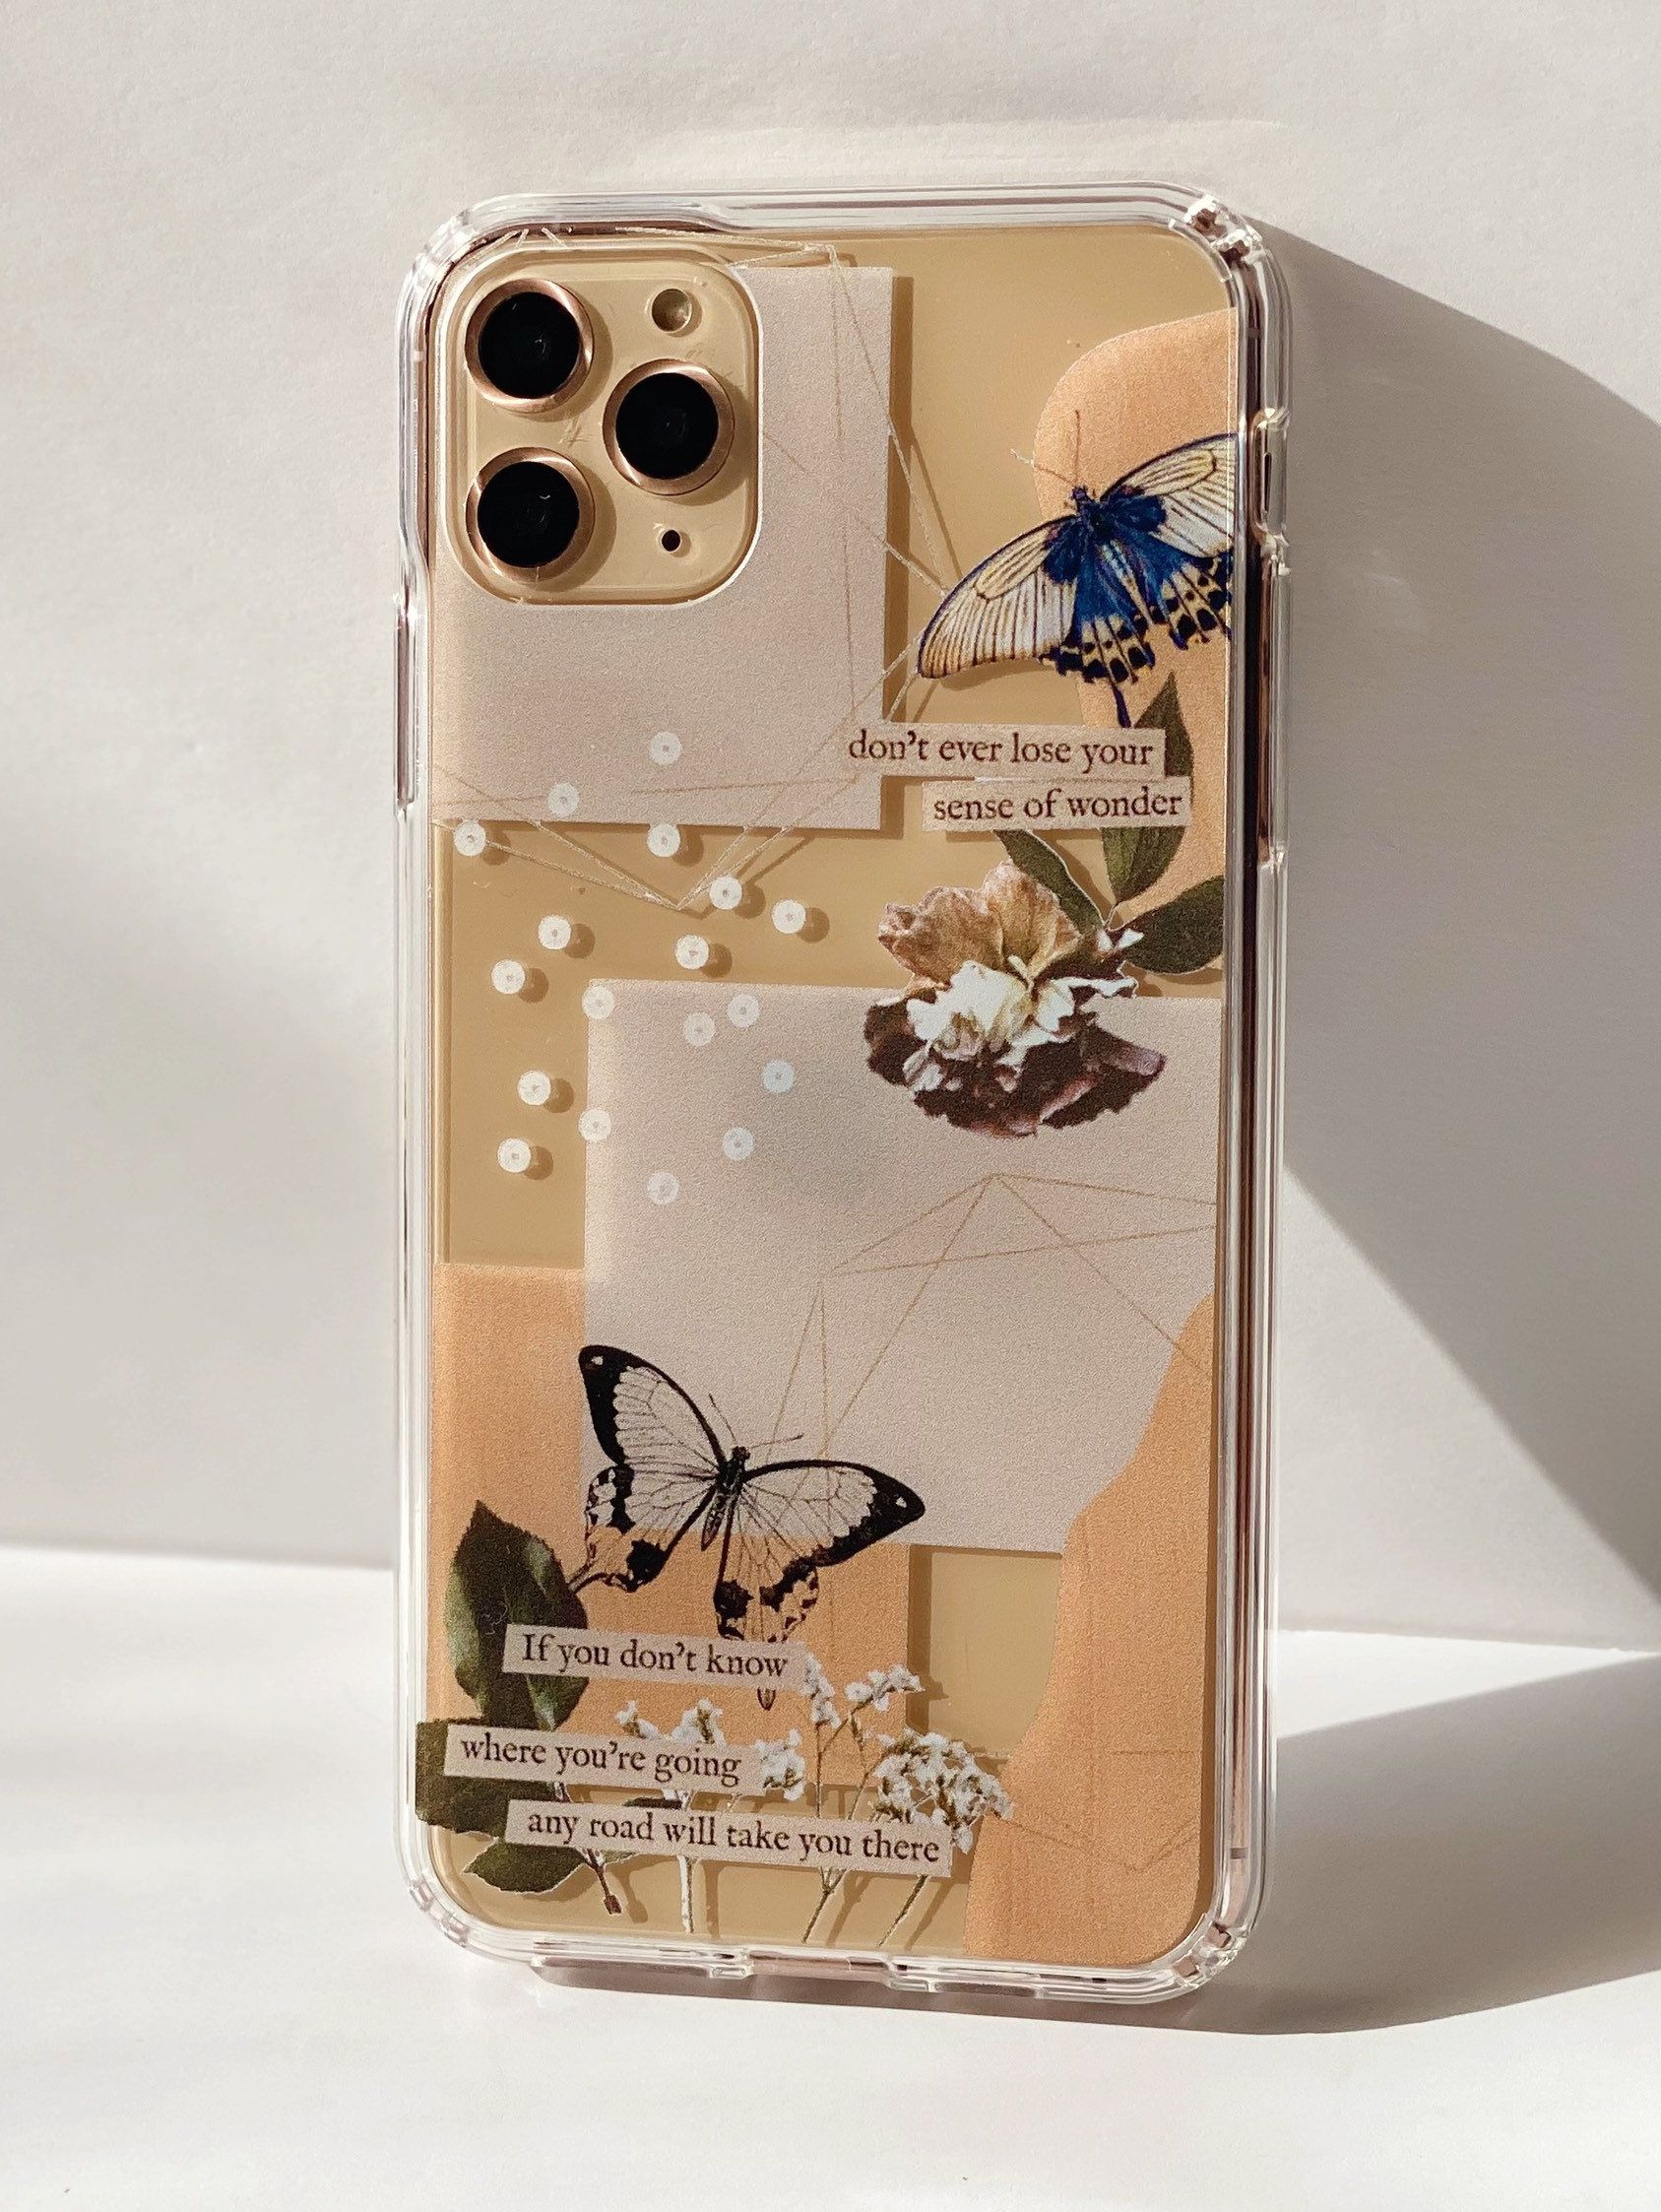 Aesthetic Abstract Butterfly Collage Clippings Clear Modern Phone Case For iPhone 12 Mini 11 Pro Max XR XS X 7 8 Plus SE 2020 Galaxy S10 S20